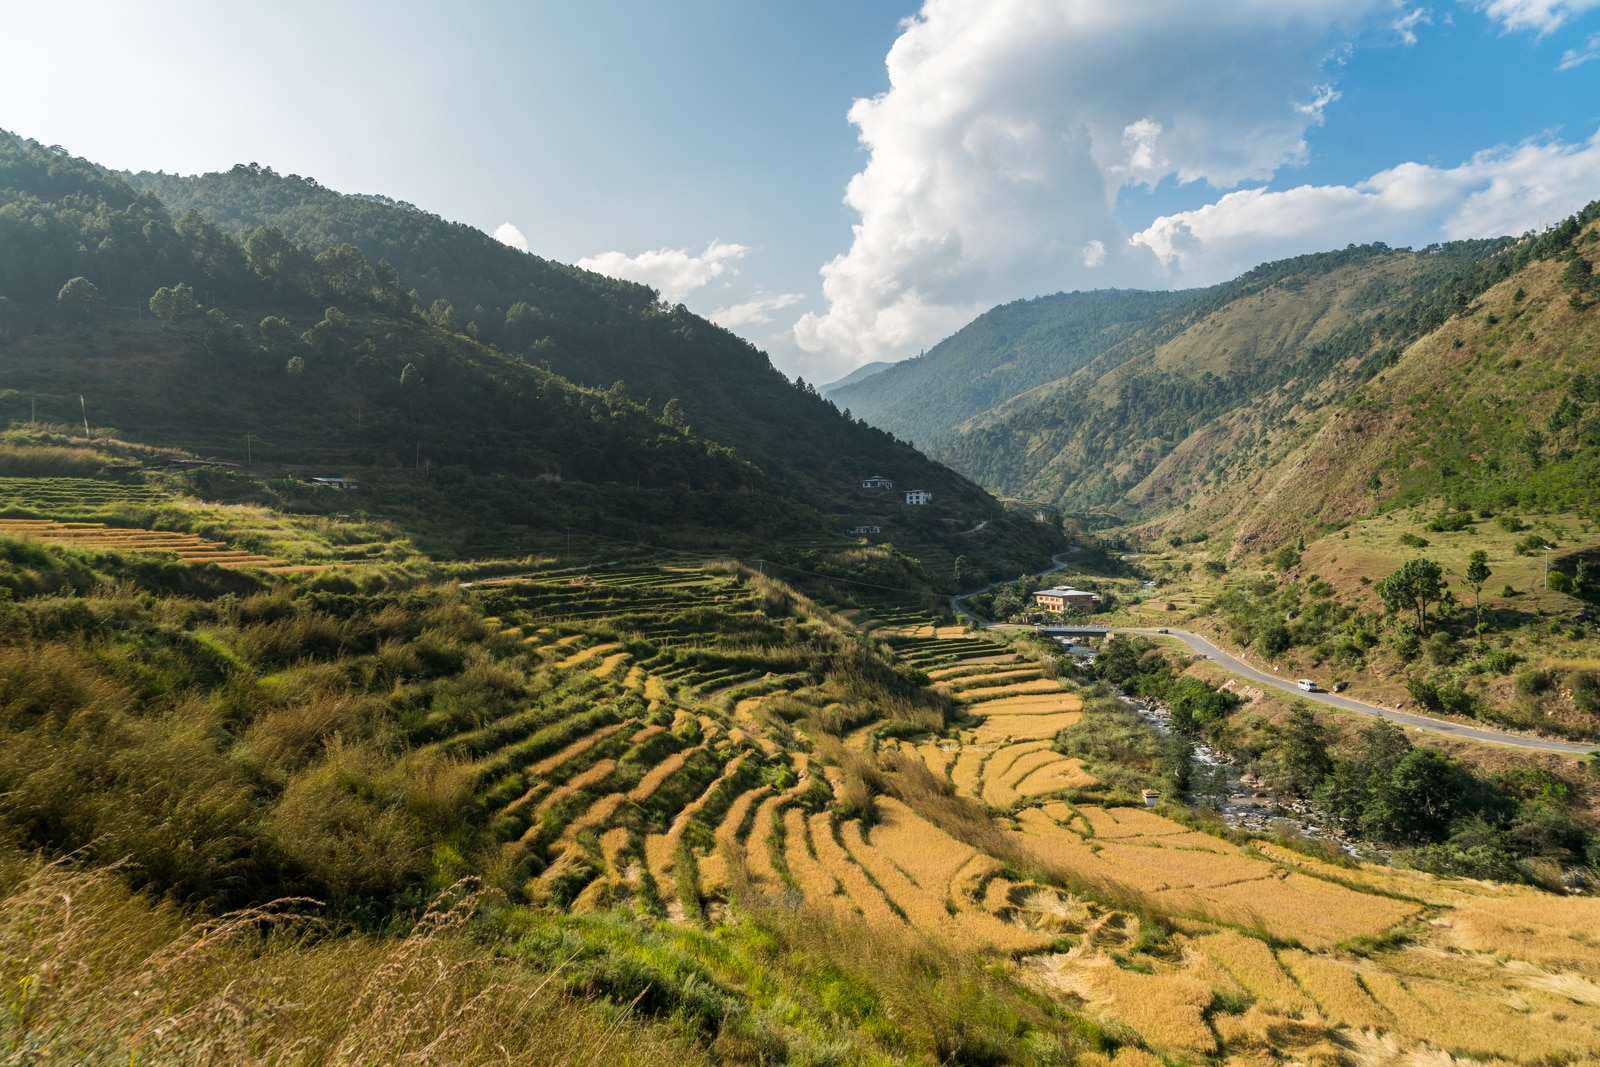 Rice paddies on the side of the highway in Punakha